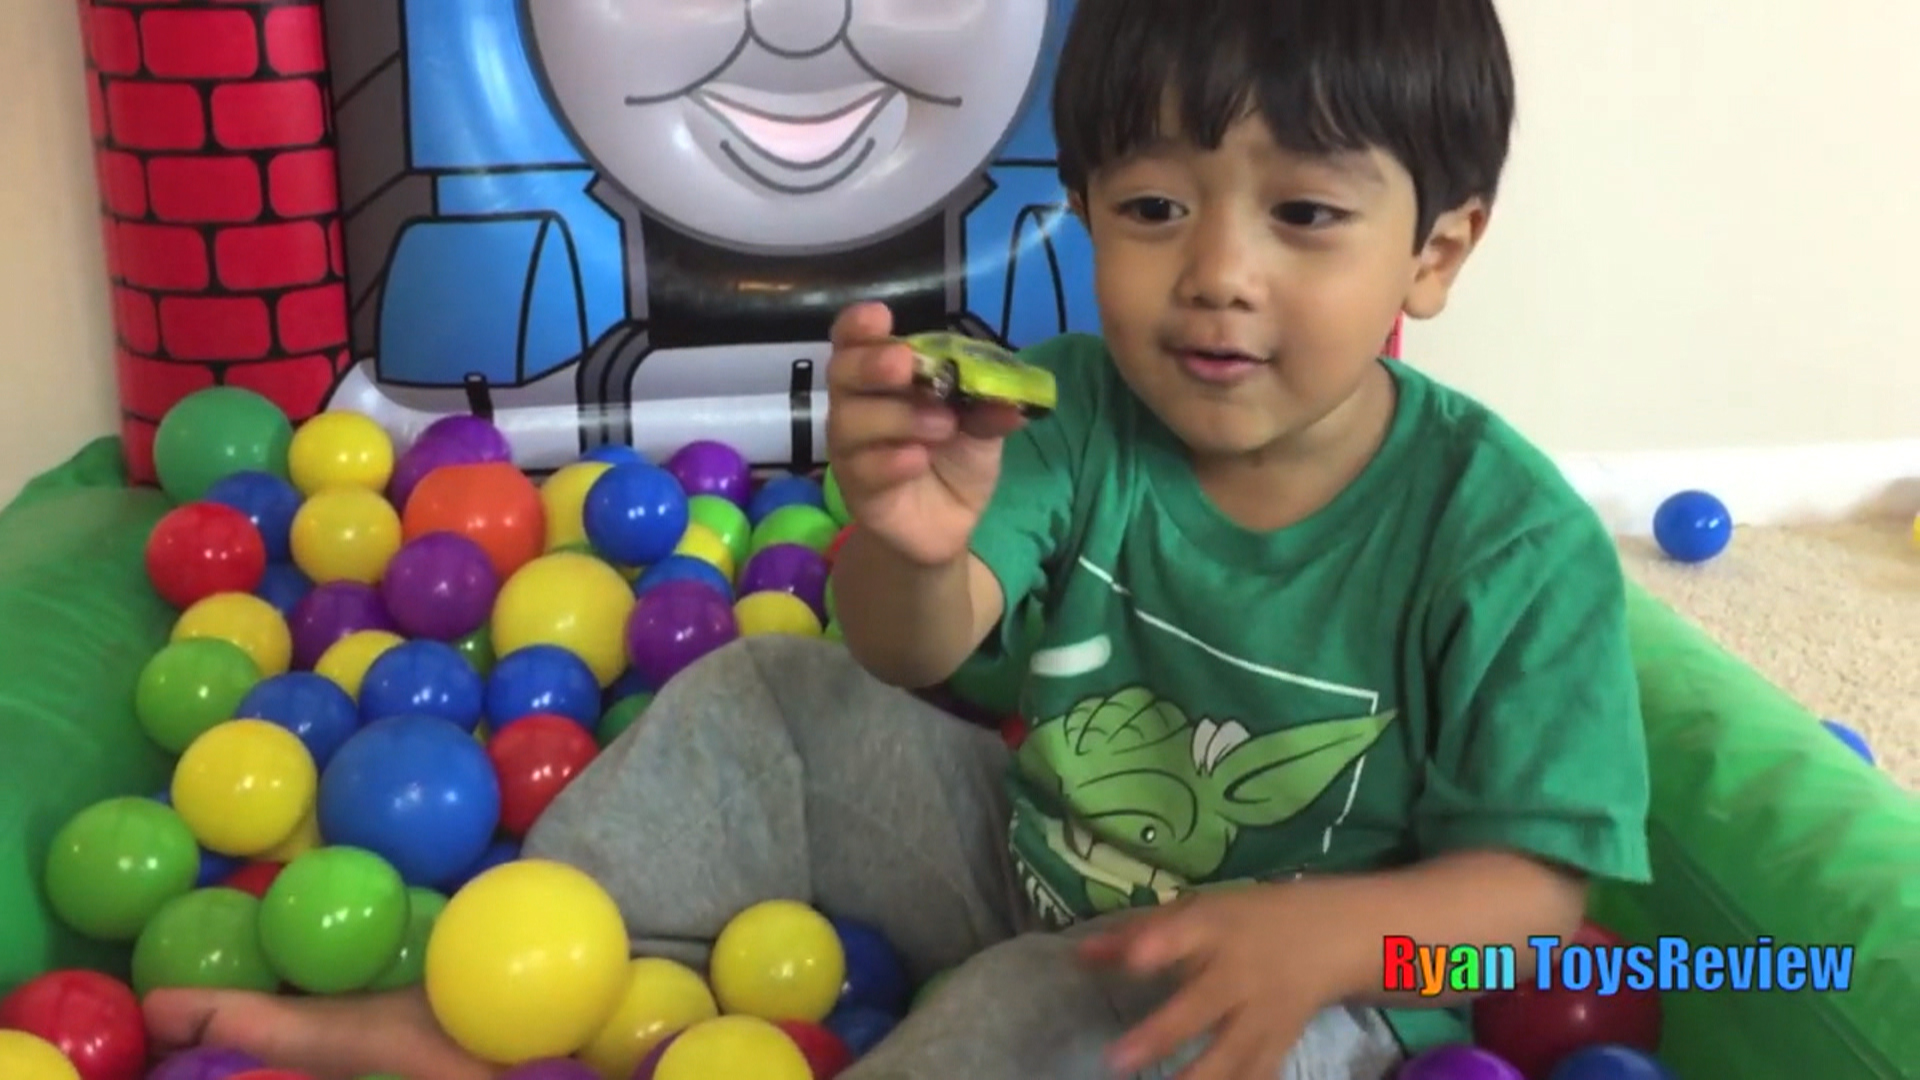 Meet the 6 year old boy who makes millions reviewing toys on